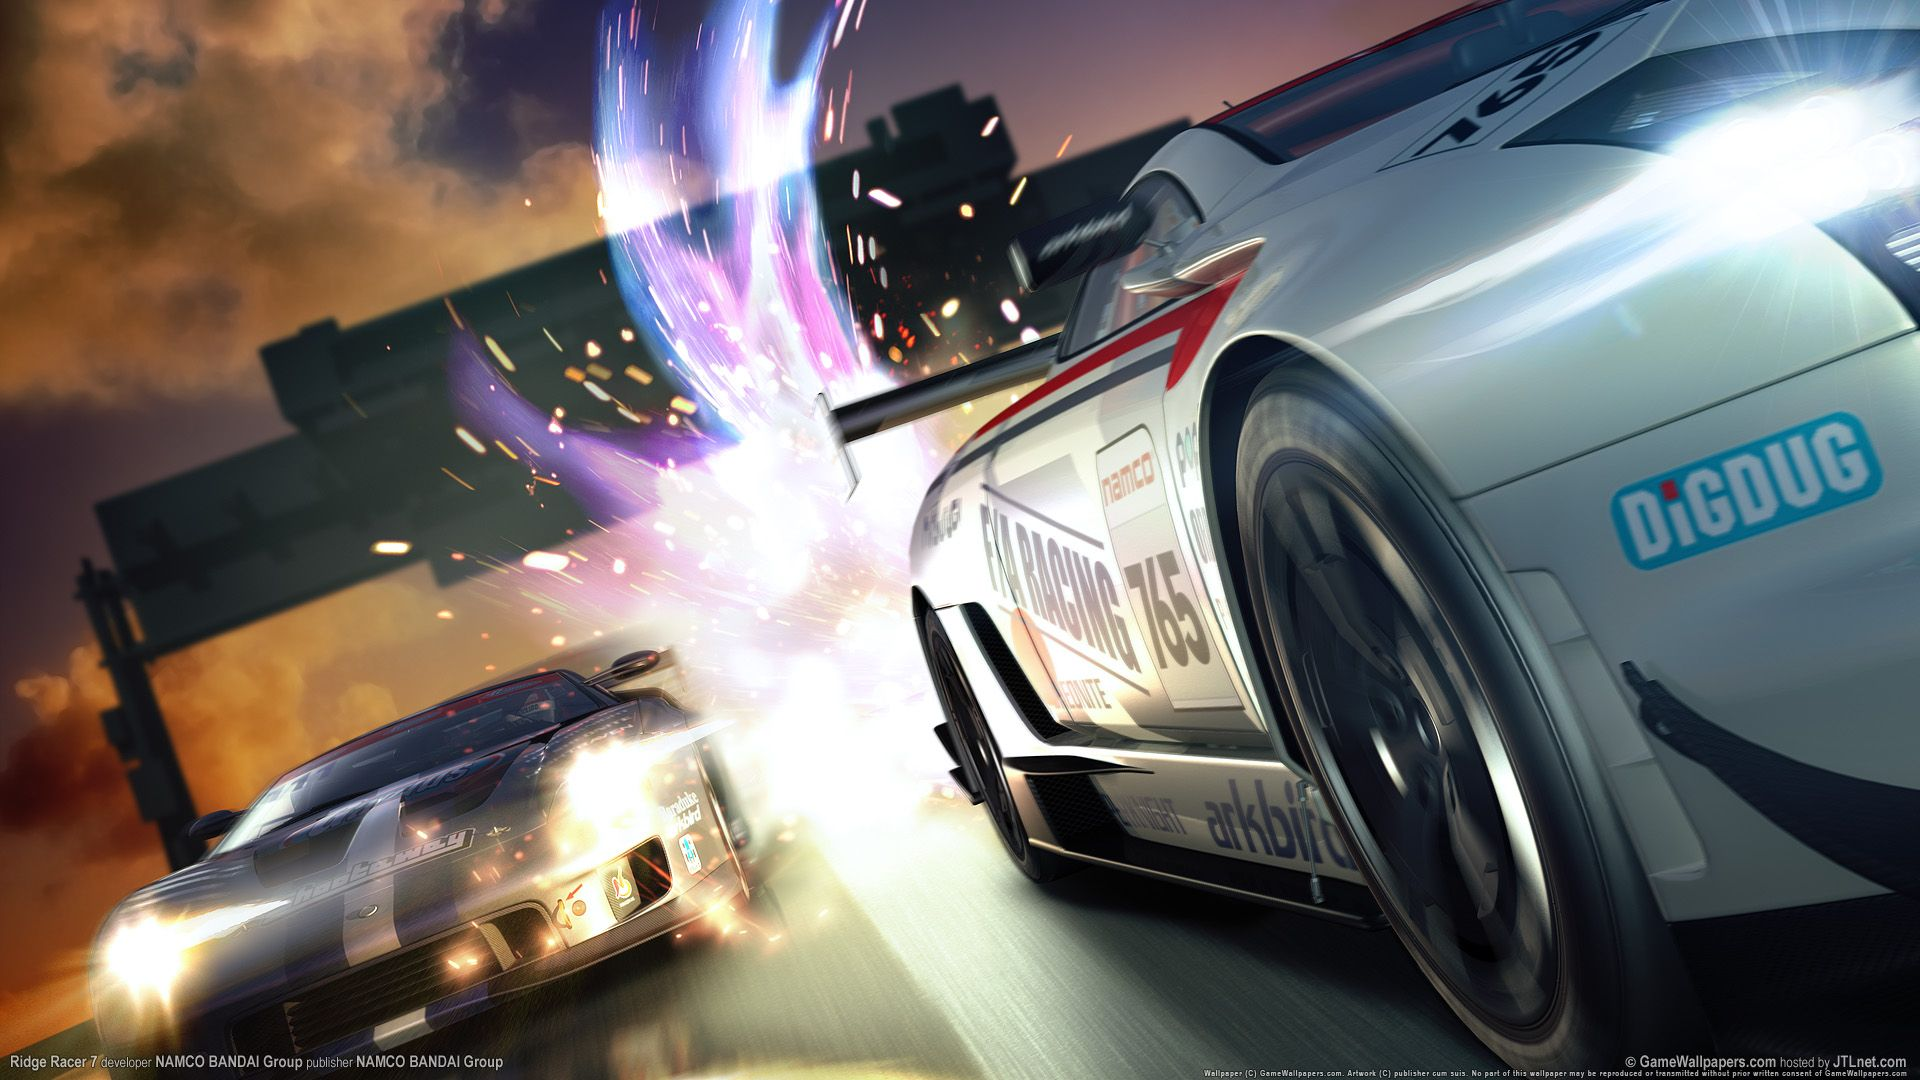 ridge racer latest game - this hd ridge racer latest game wallpaper